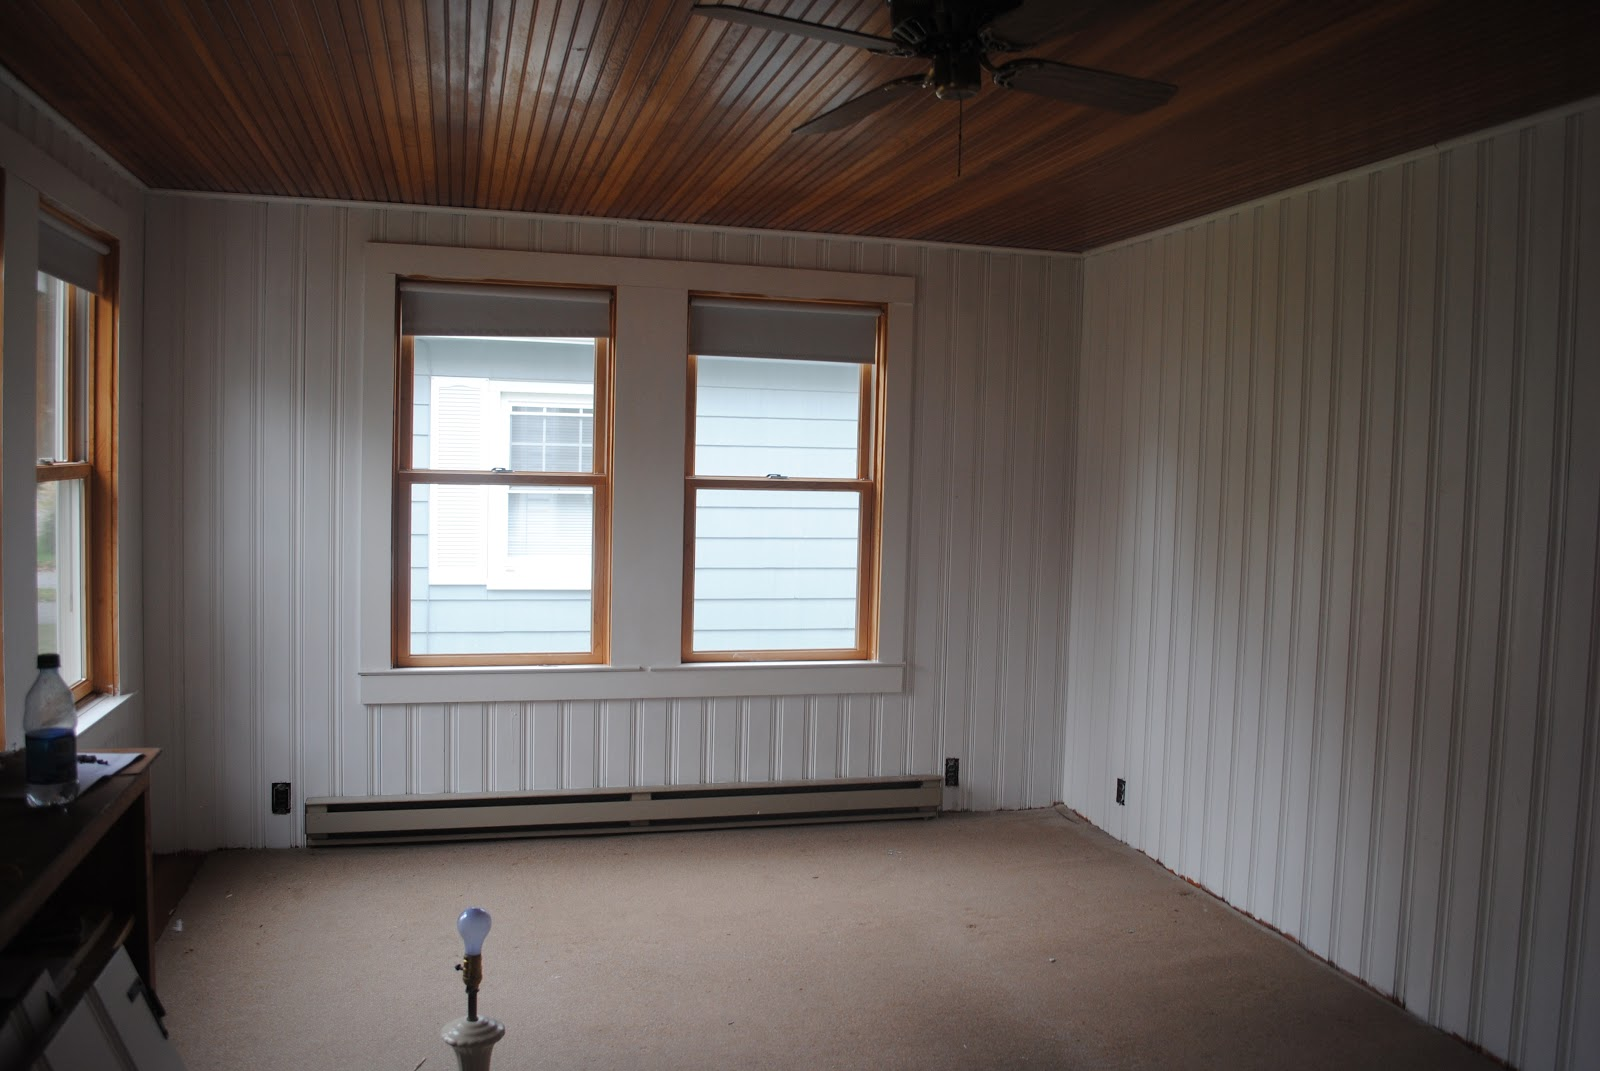 House by holly to paint knotty pine or not paint knotty for How to paint wood windows interior